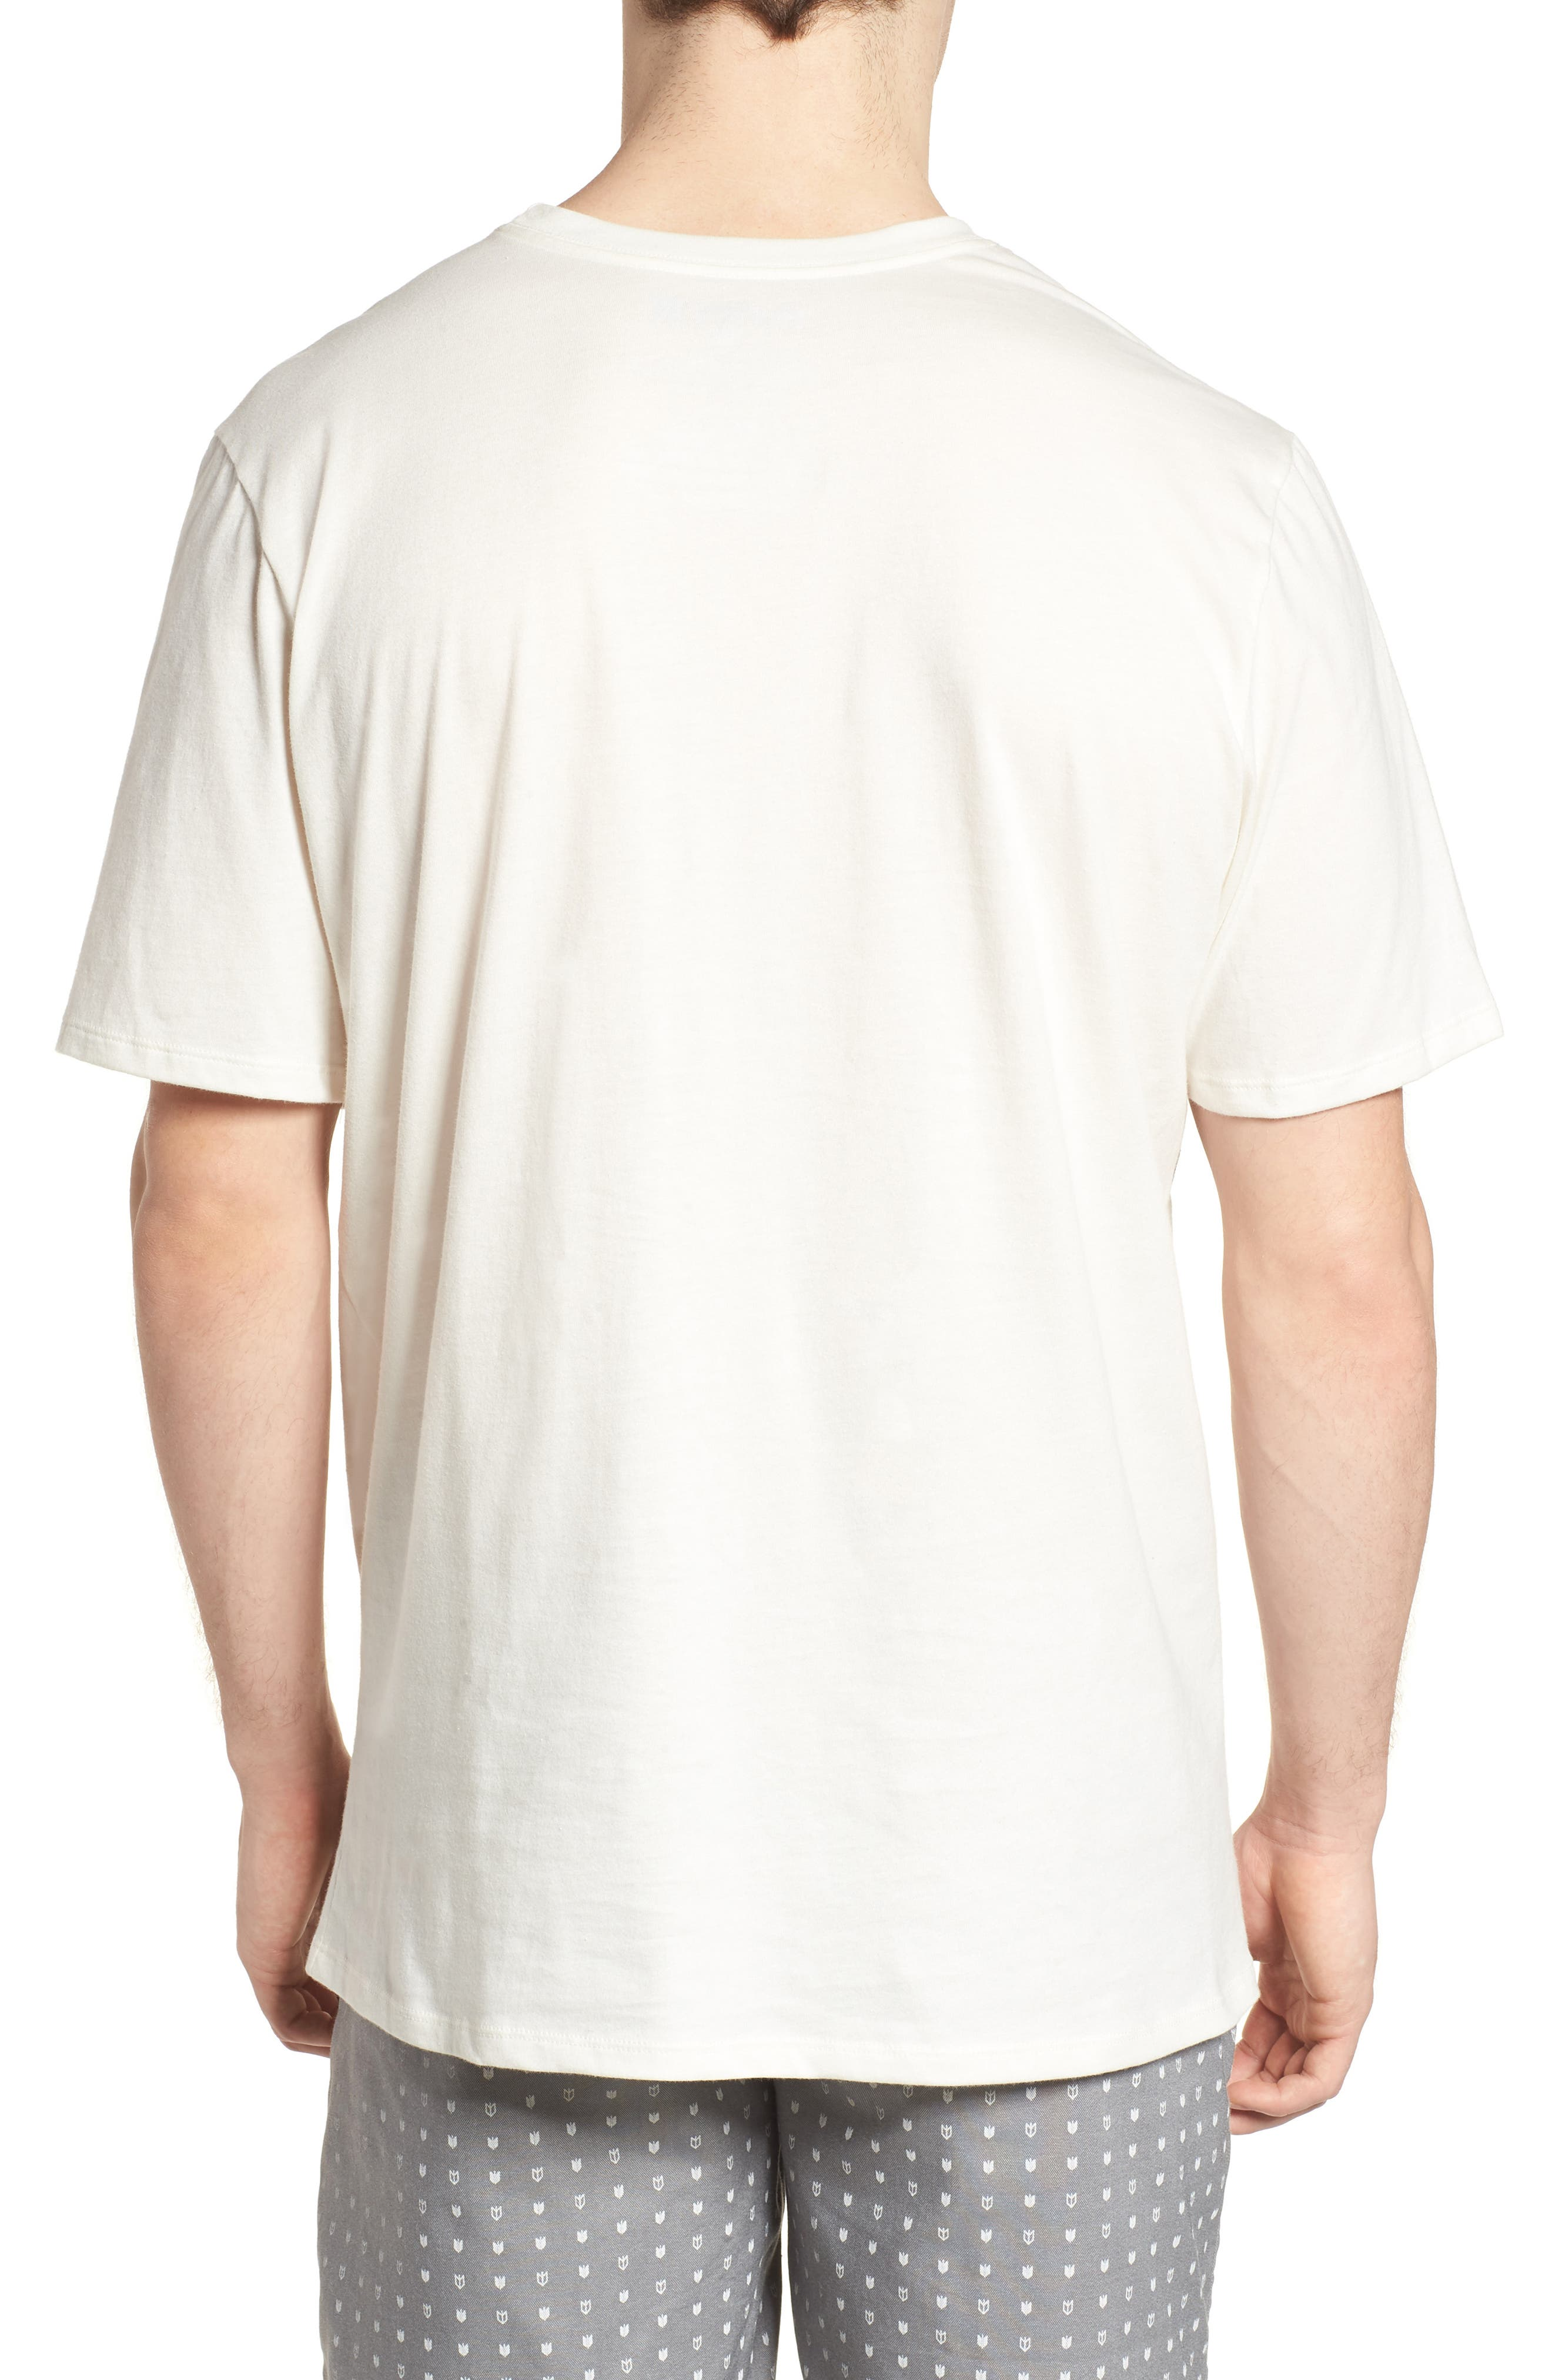 x Pendleton Glacier T-Shirt,                             Alternate thumbnail 2, color,                             Sail